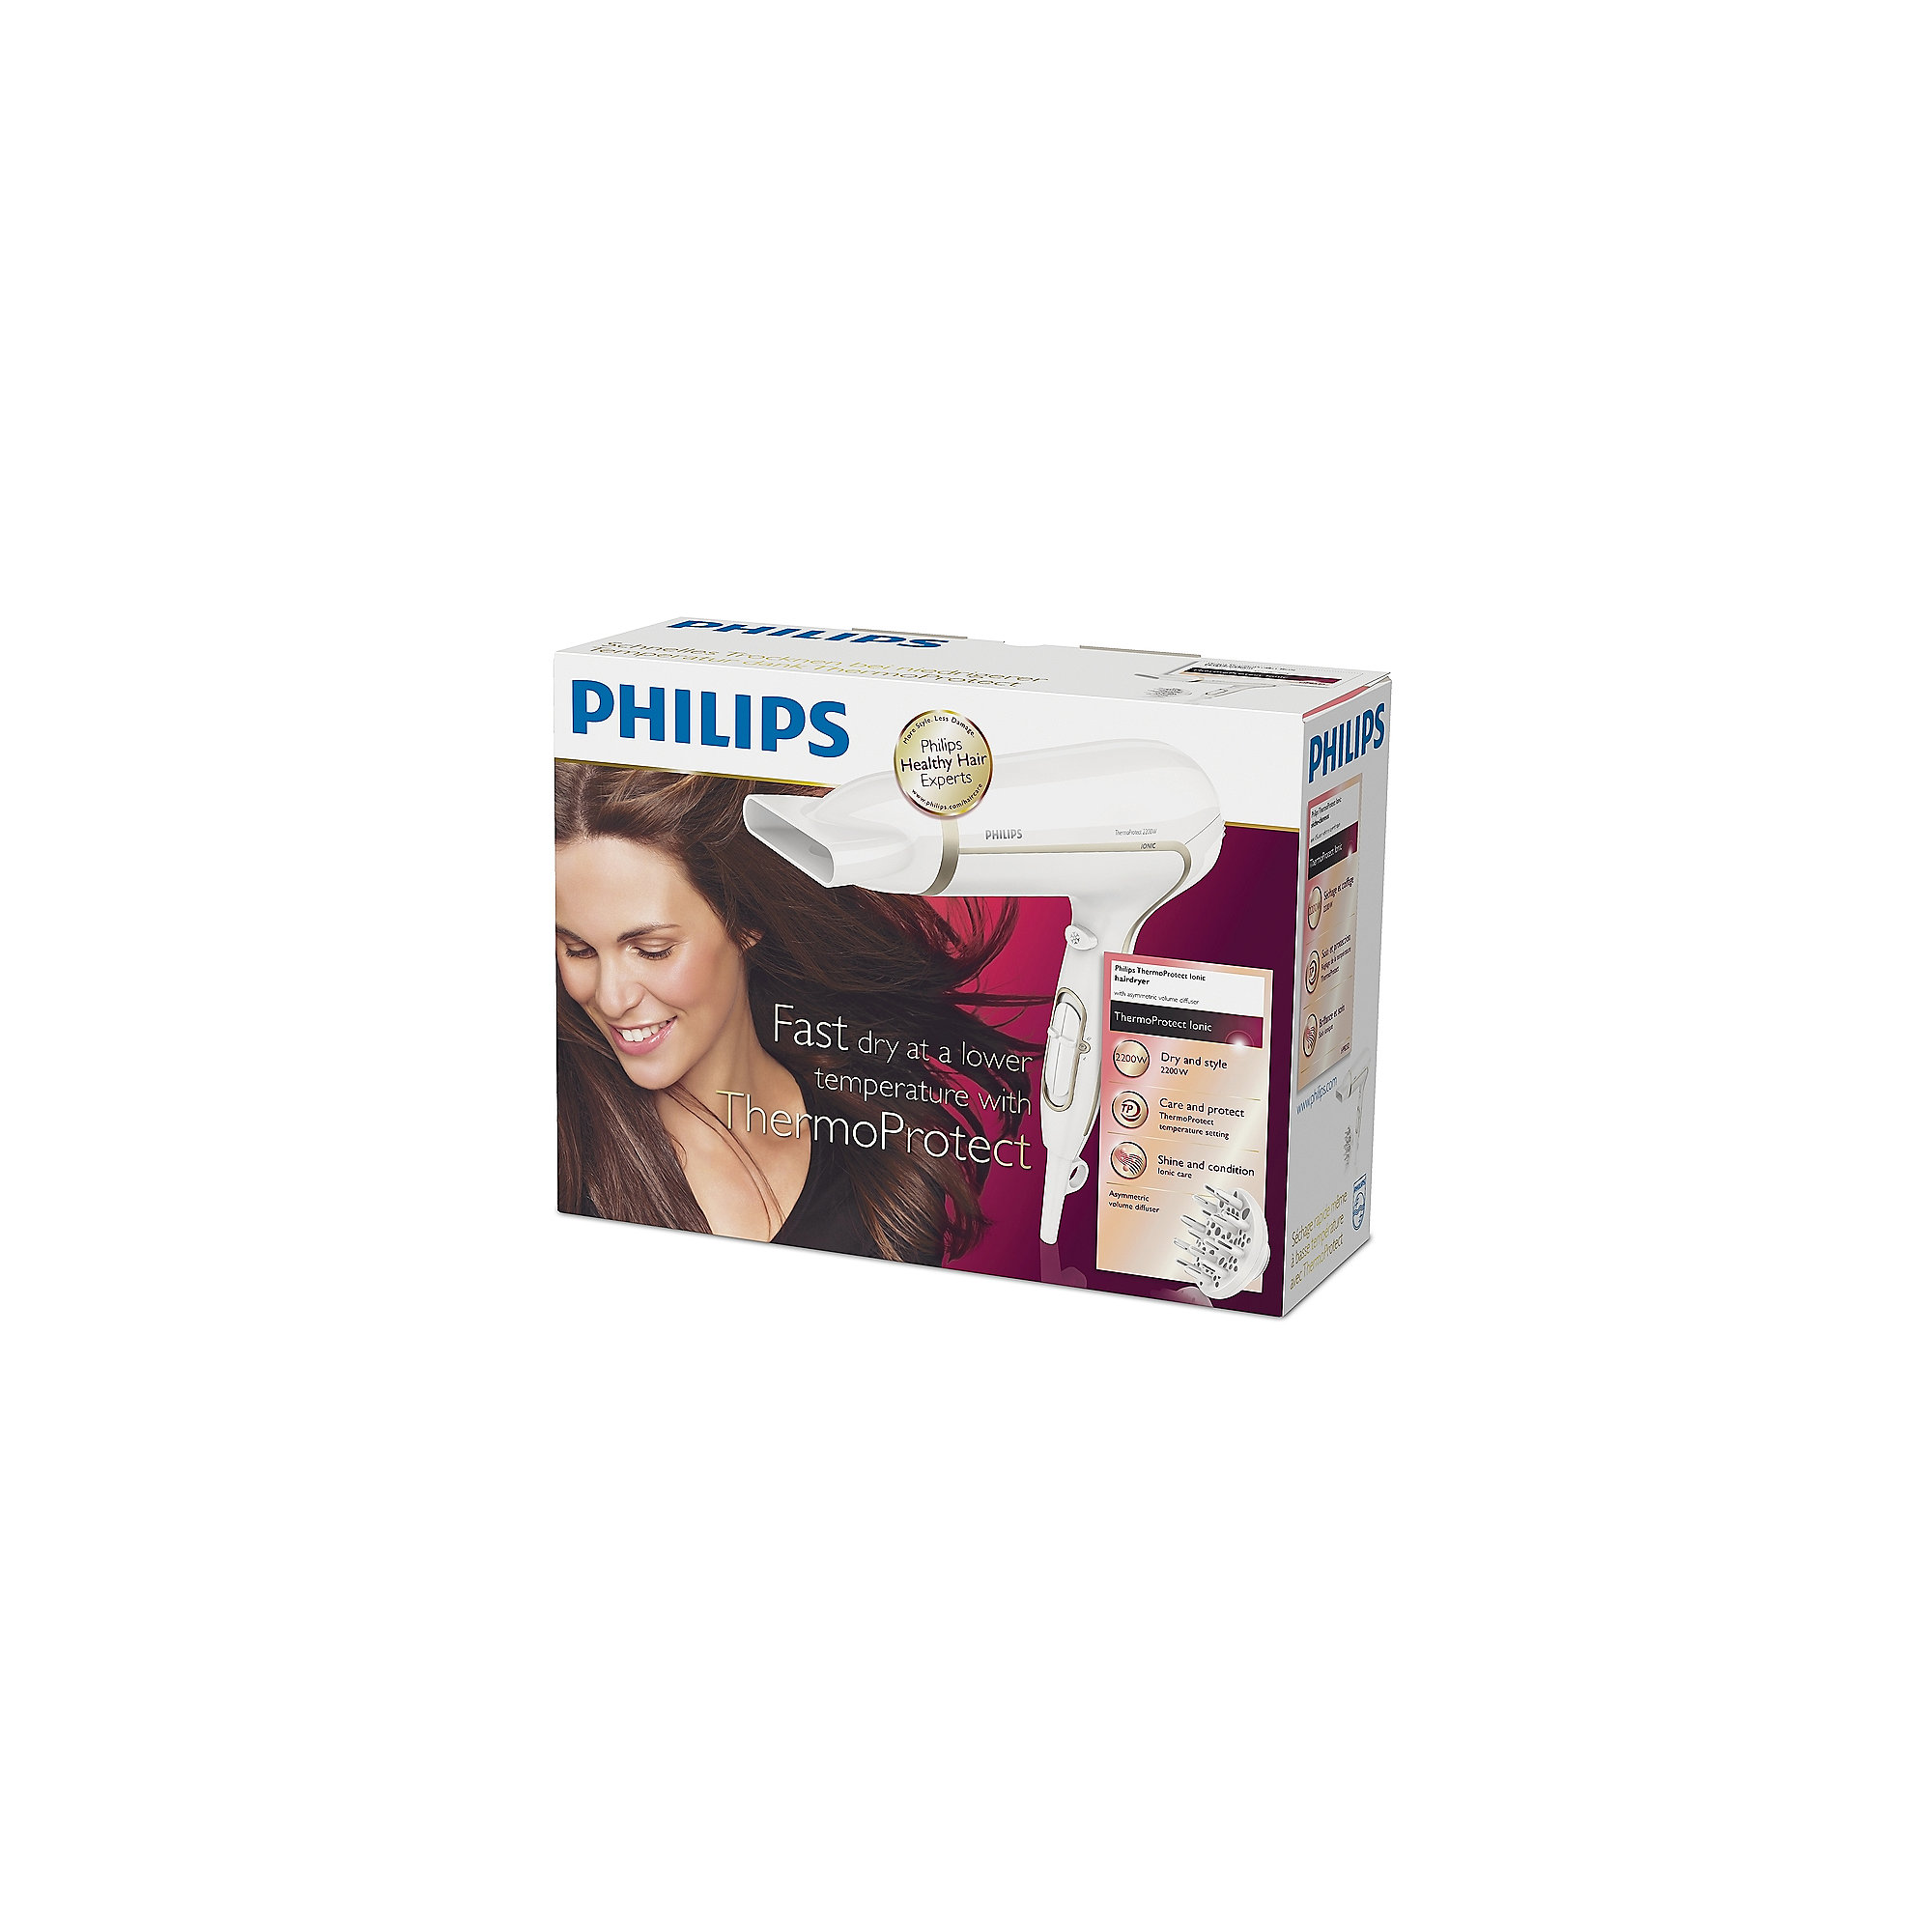 Philips HP8232/00 Care Serie Haartrockner